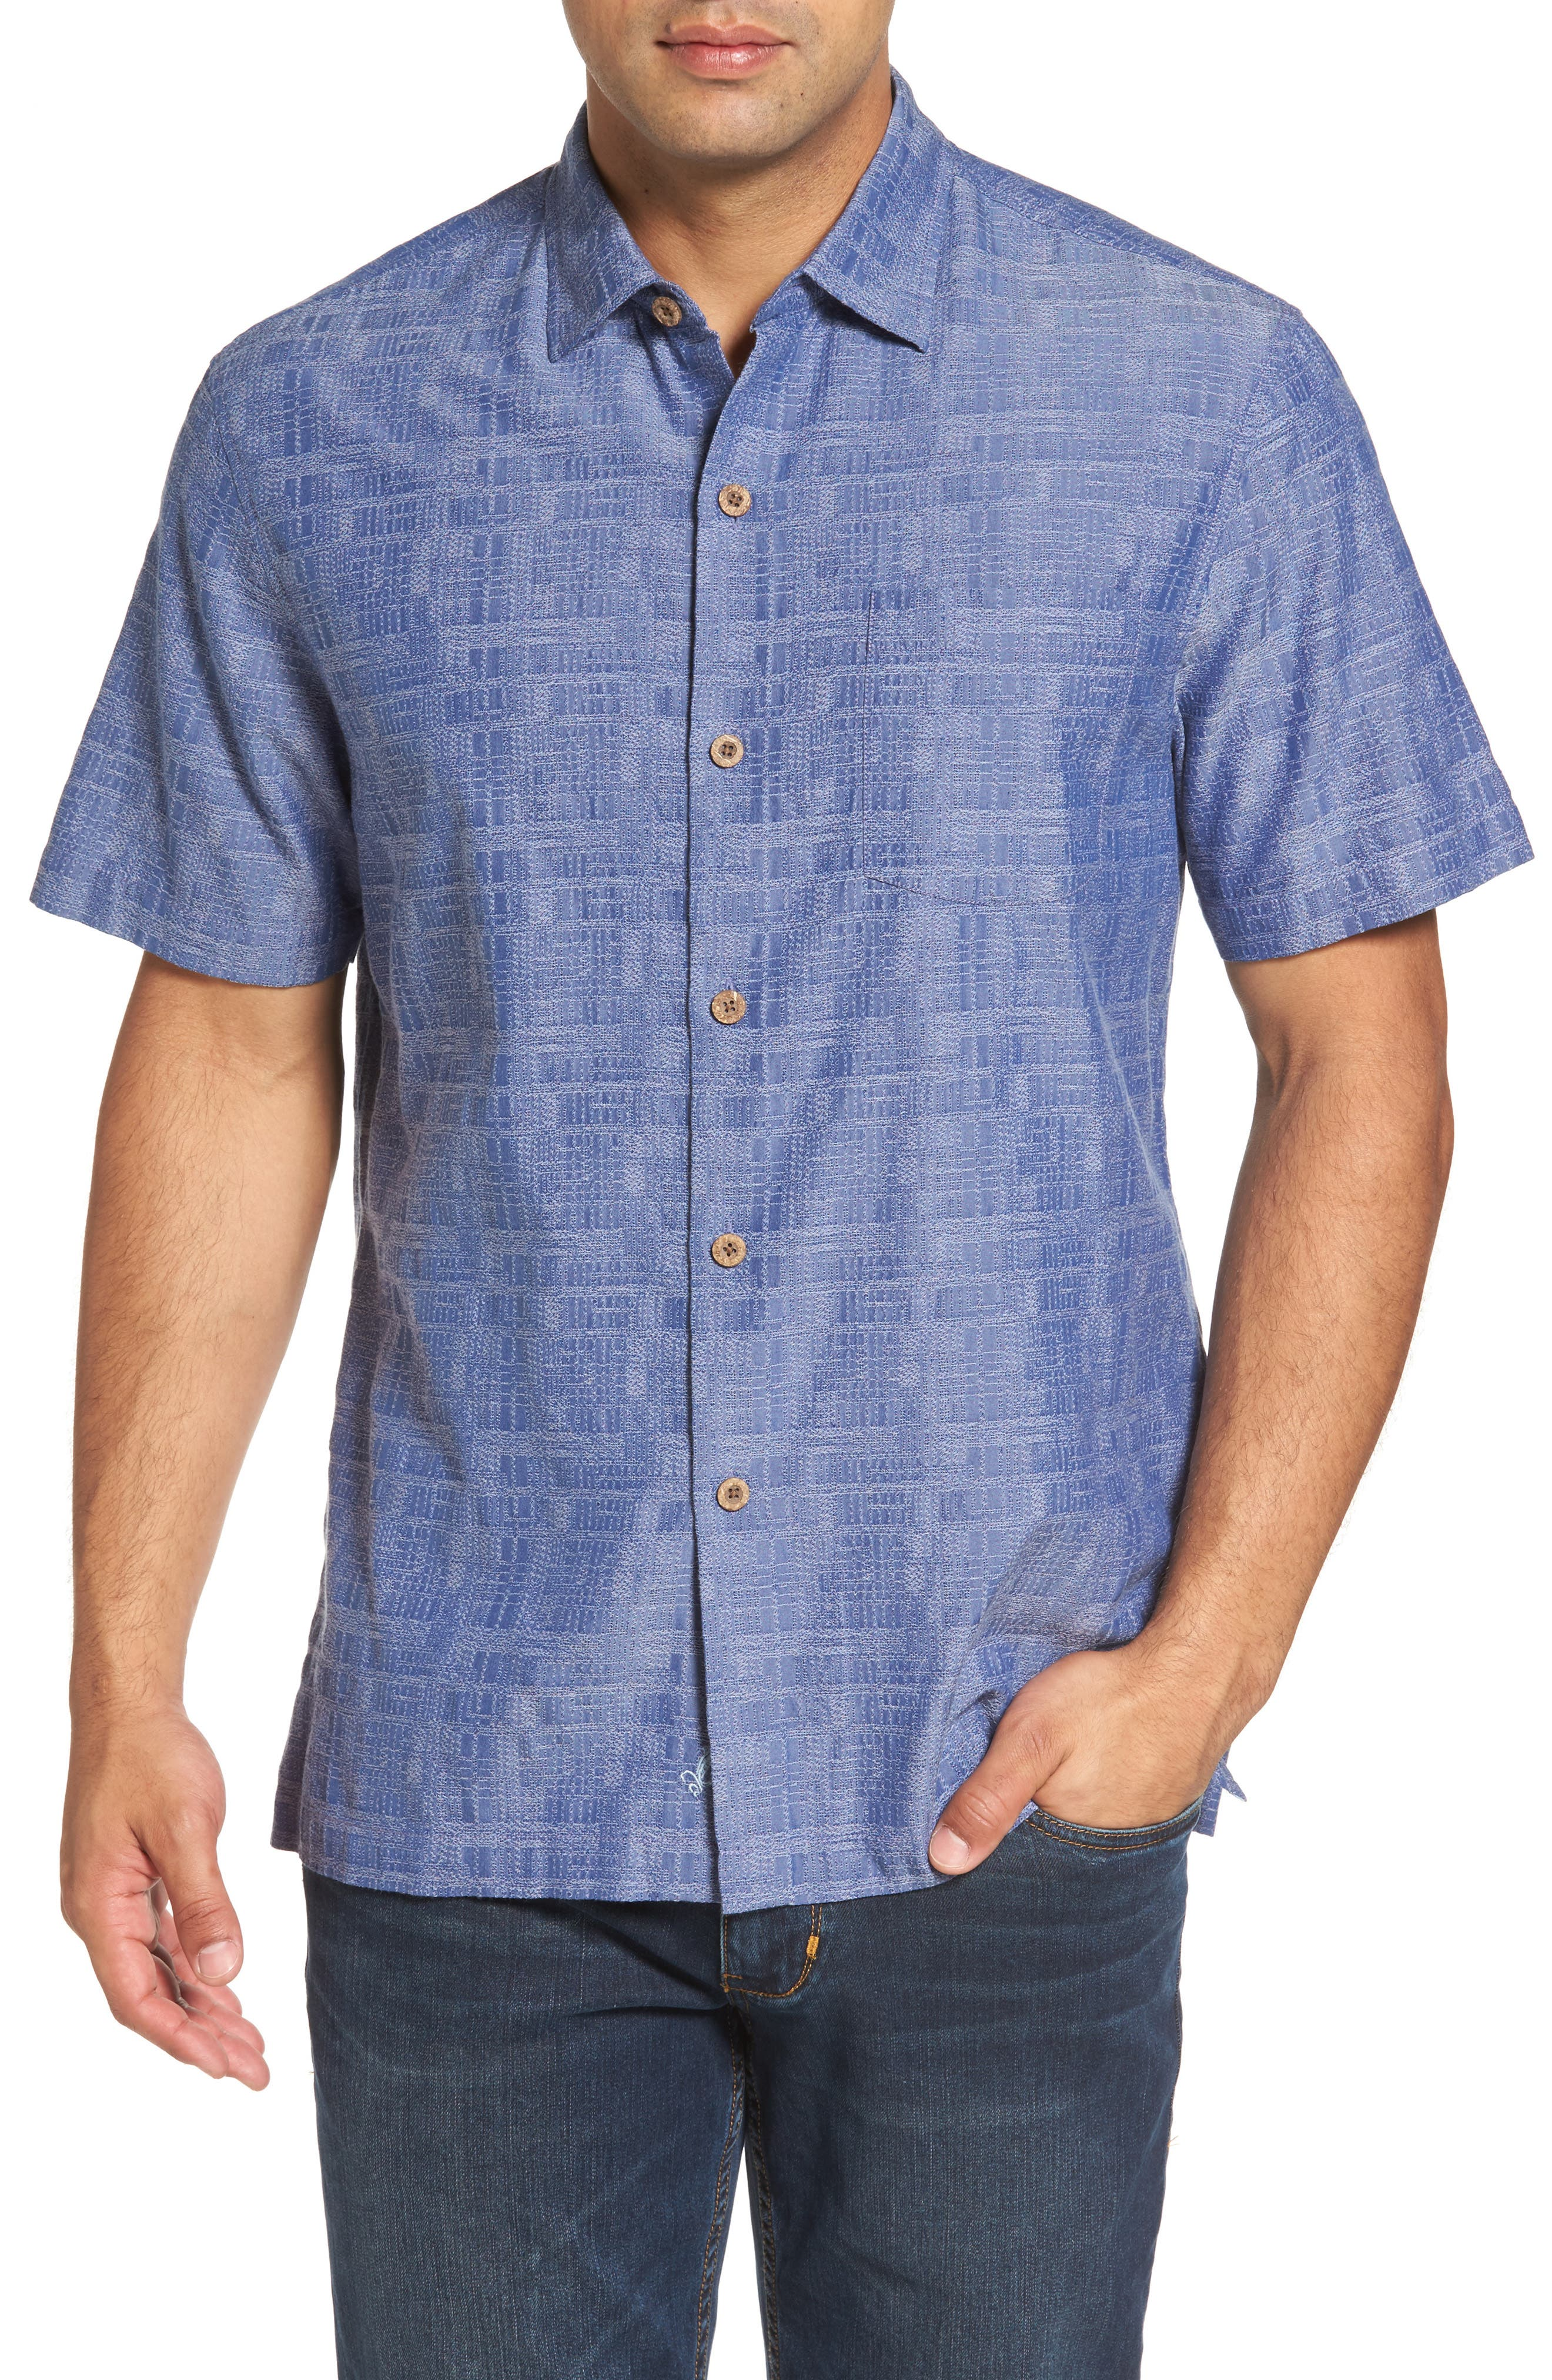 Alternate Image 1 Selected - Tommy Bahama Oceanside Woven Shirt